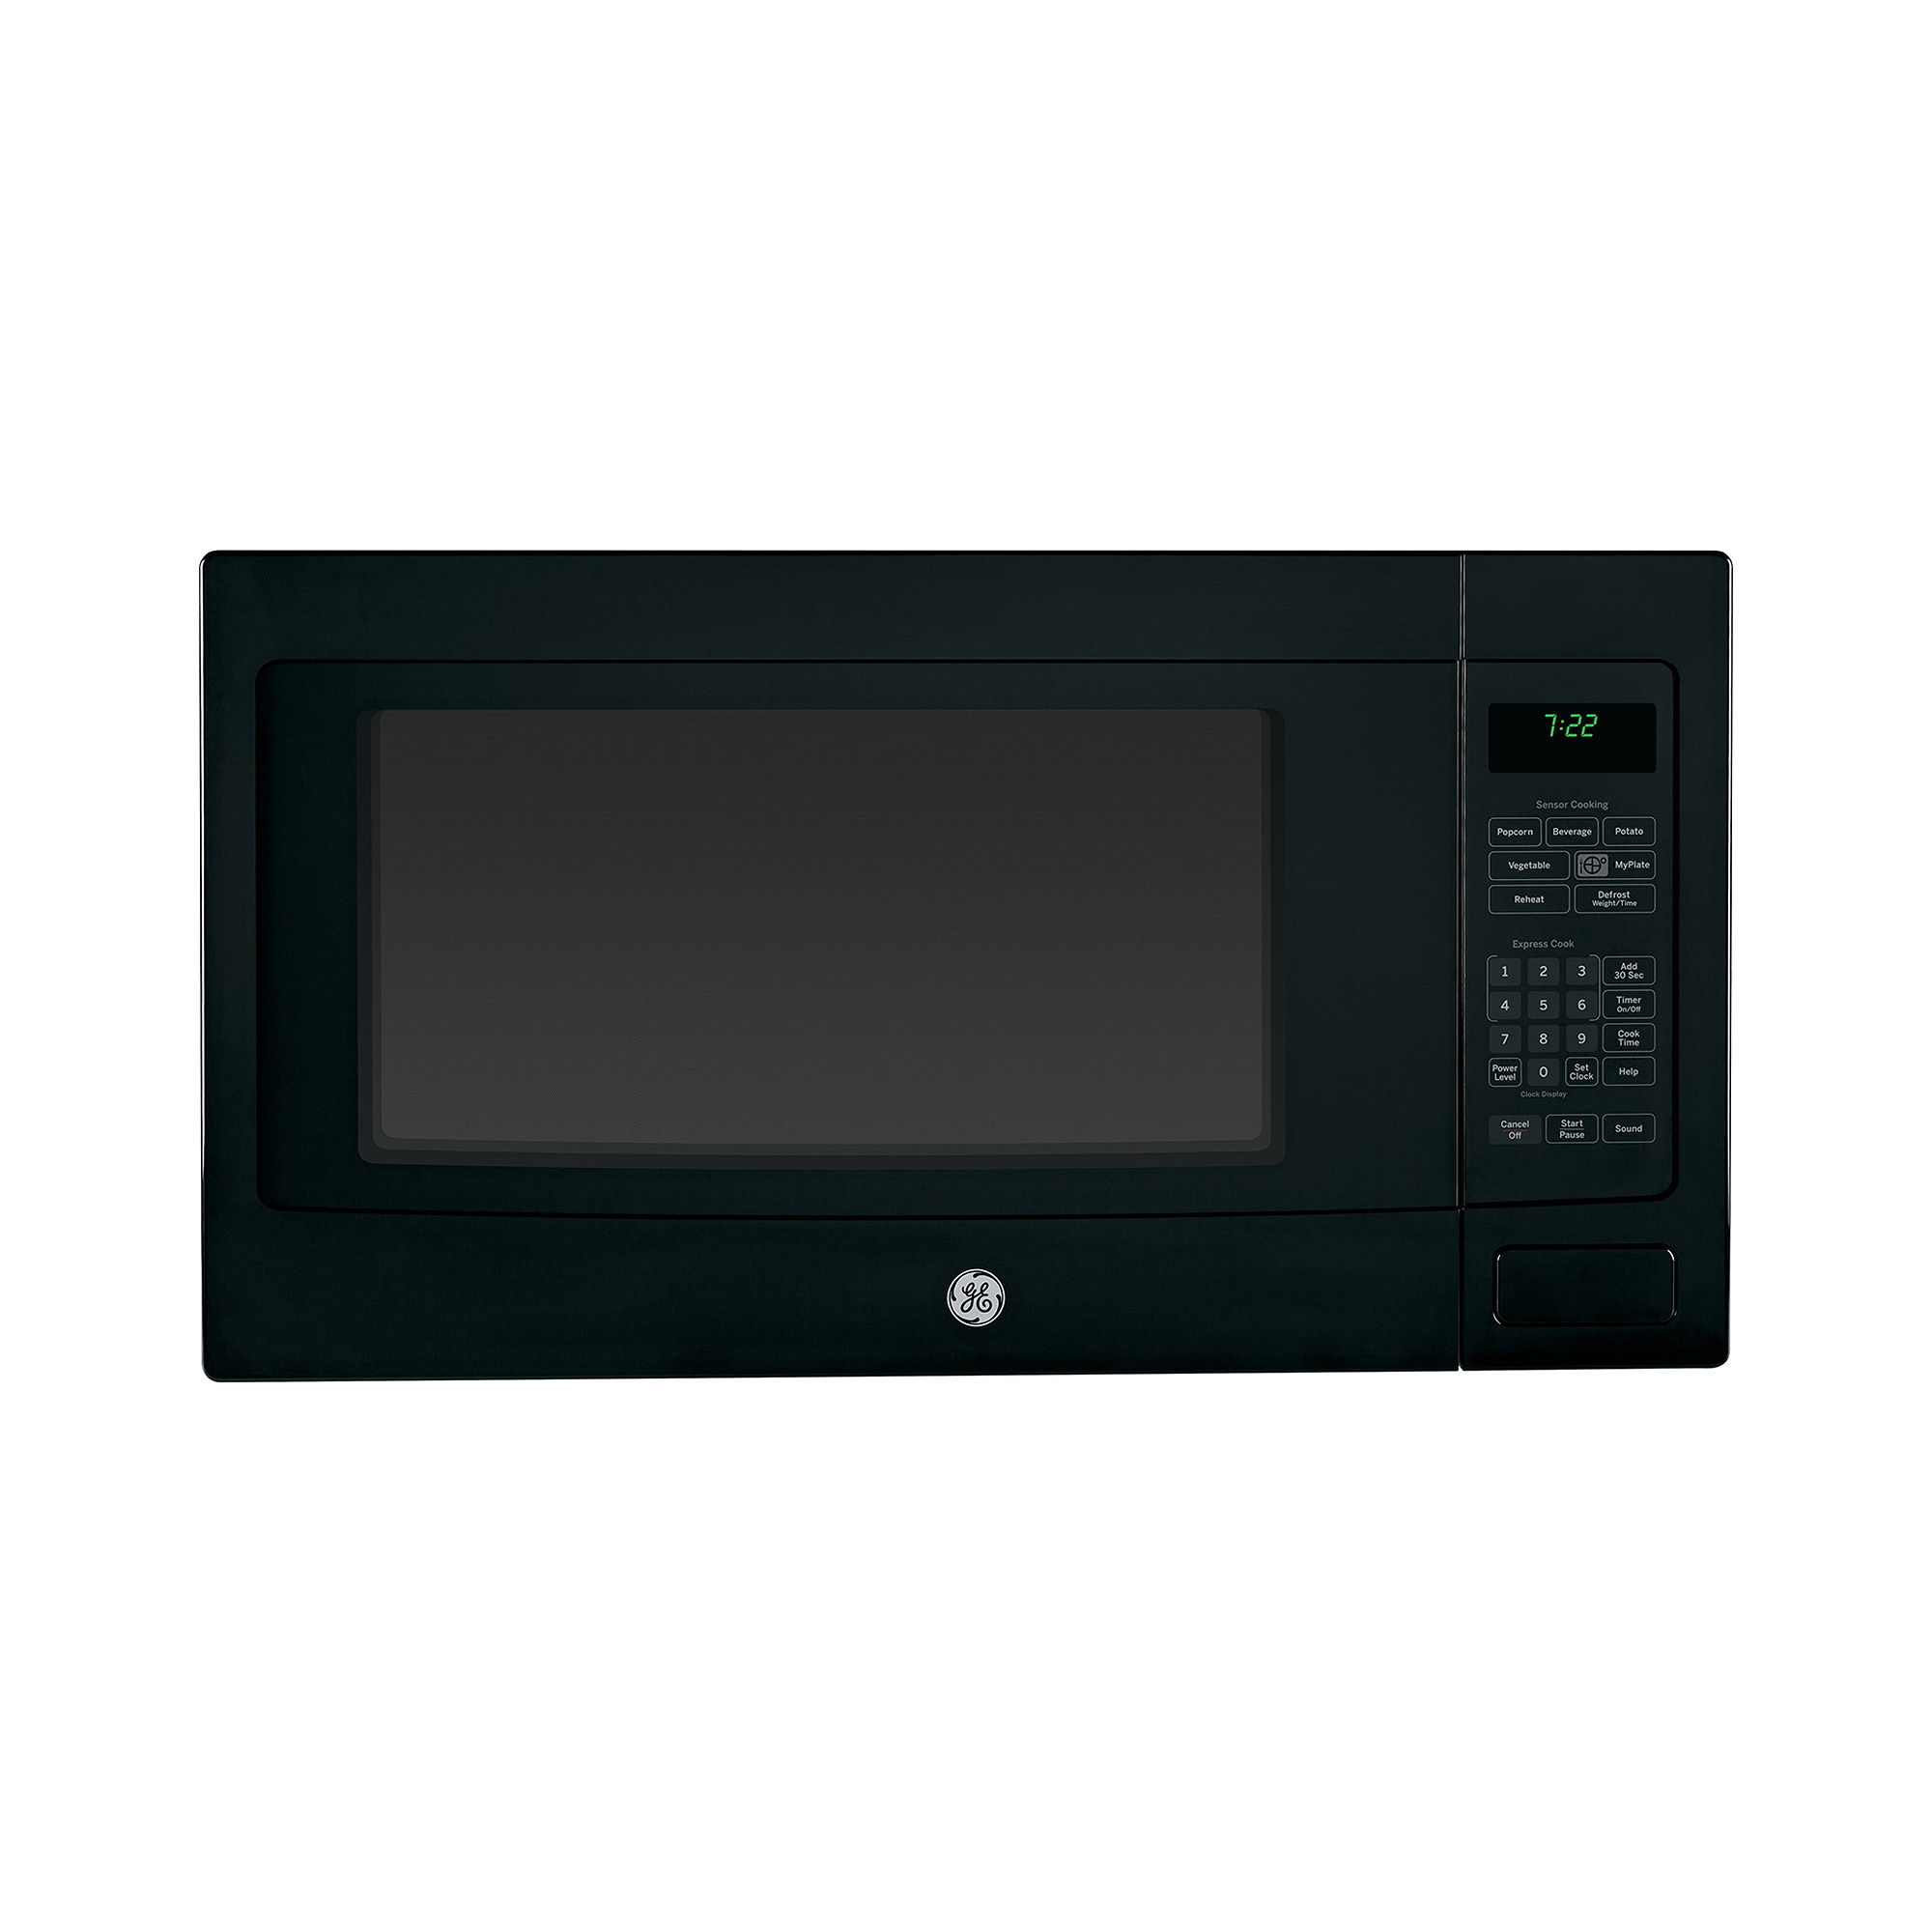 GE Profile 2.2 Cu. Ft. Countertop Microwave Oven with Sensor Cooking ...